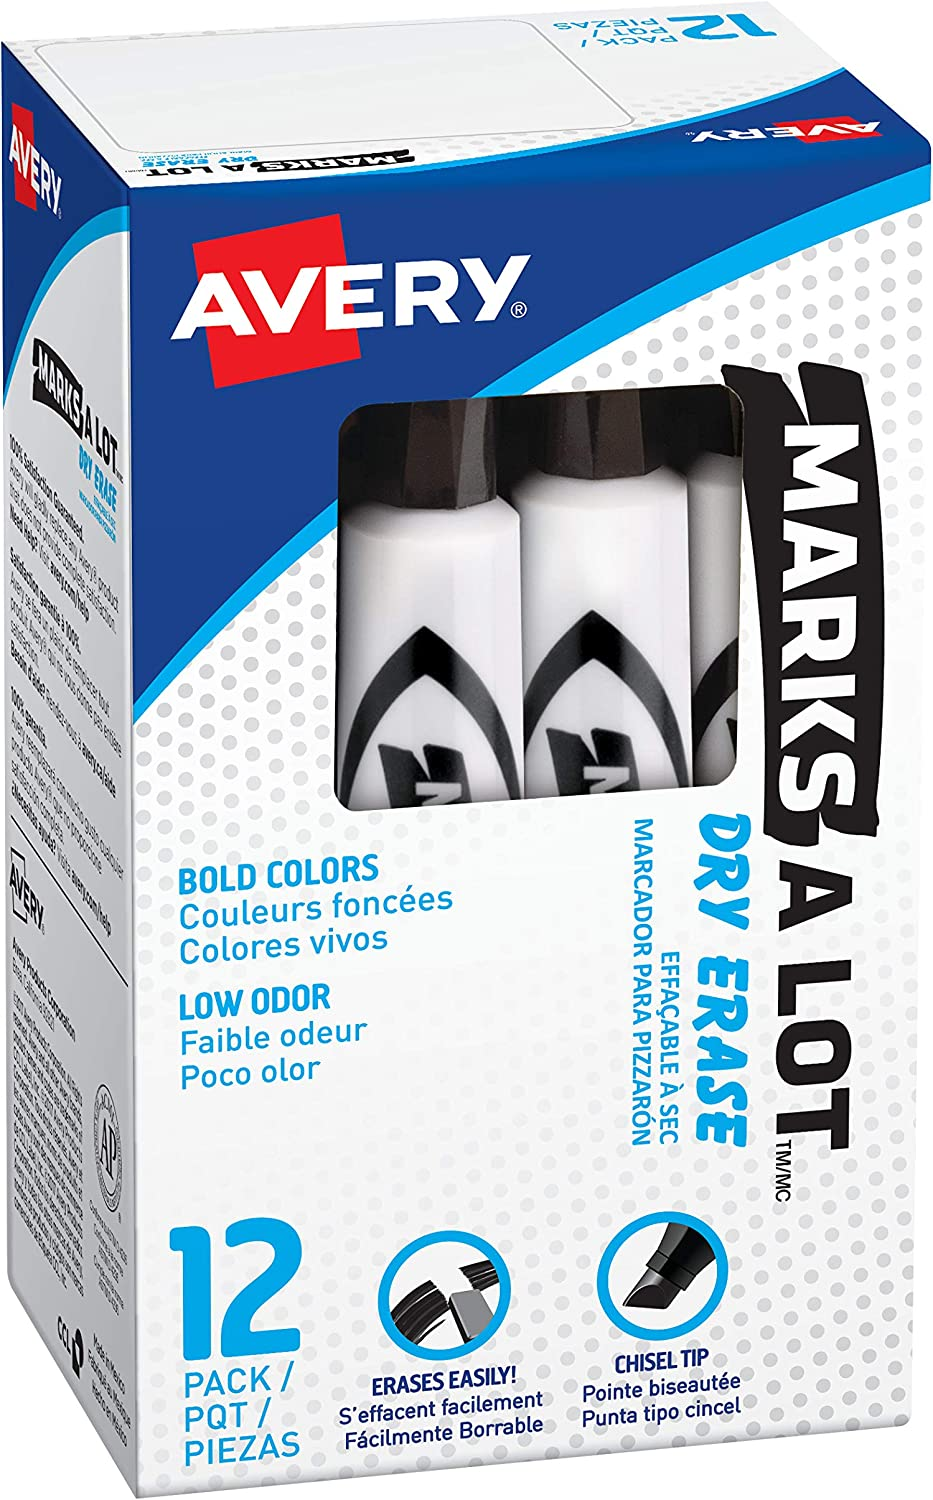 Max 60% OFF Avery low-pricing Marks A Lot Dry Erase Markers Low Odor Board Marker White